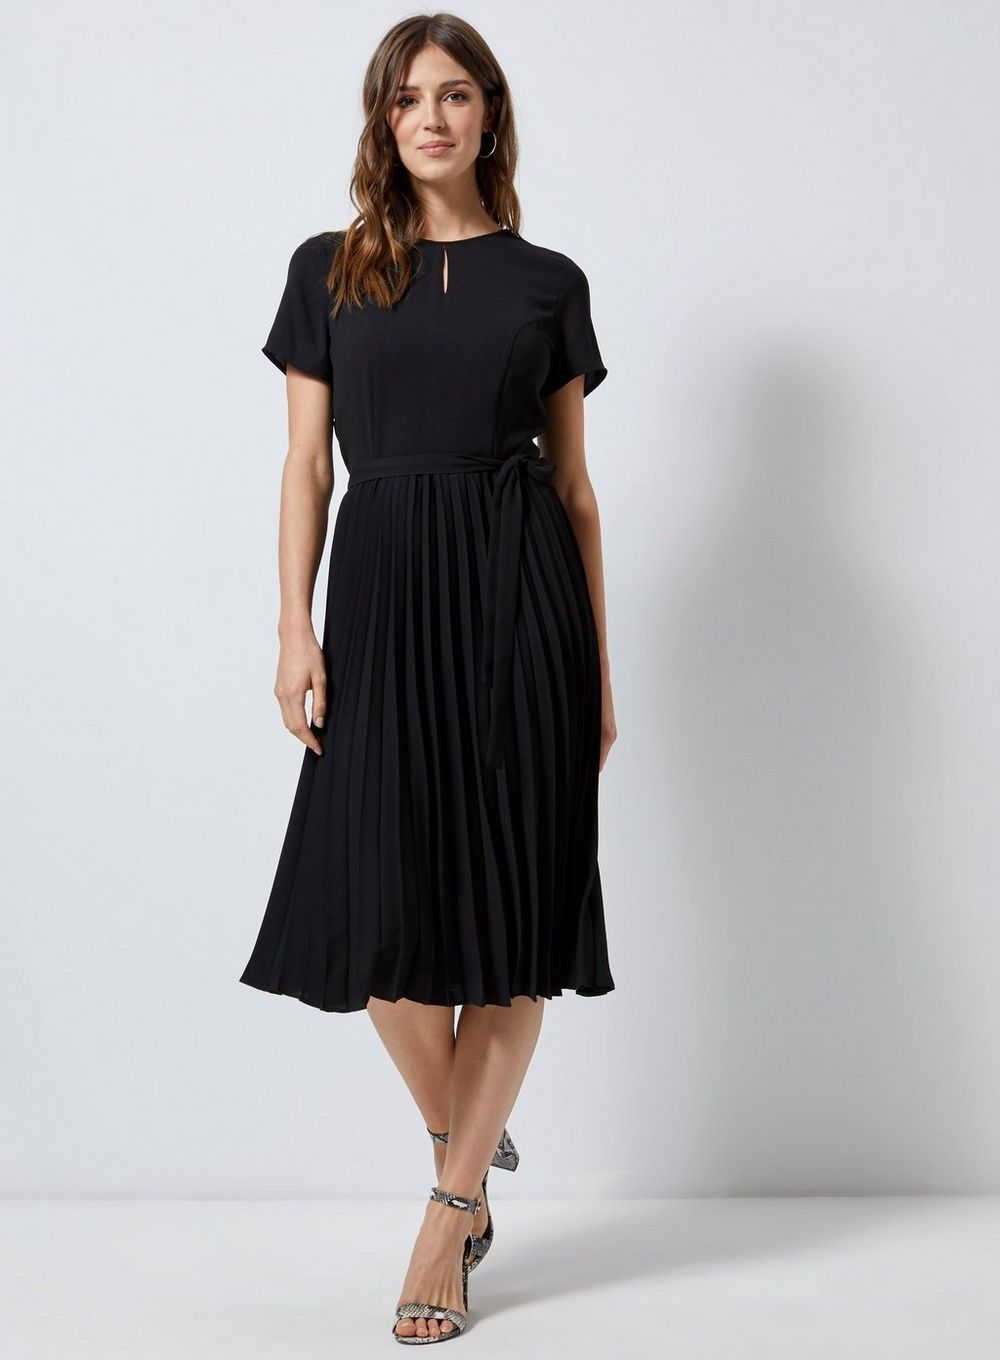 6163e69d5e1 Black Plain Pleat Fit and Flare Dress - View All New In - New In - Dorothy  Perkins United States